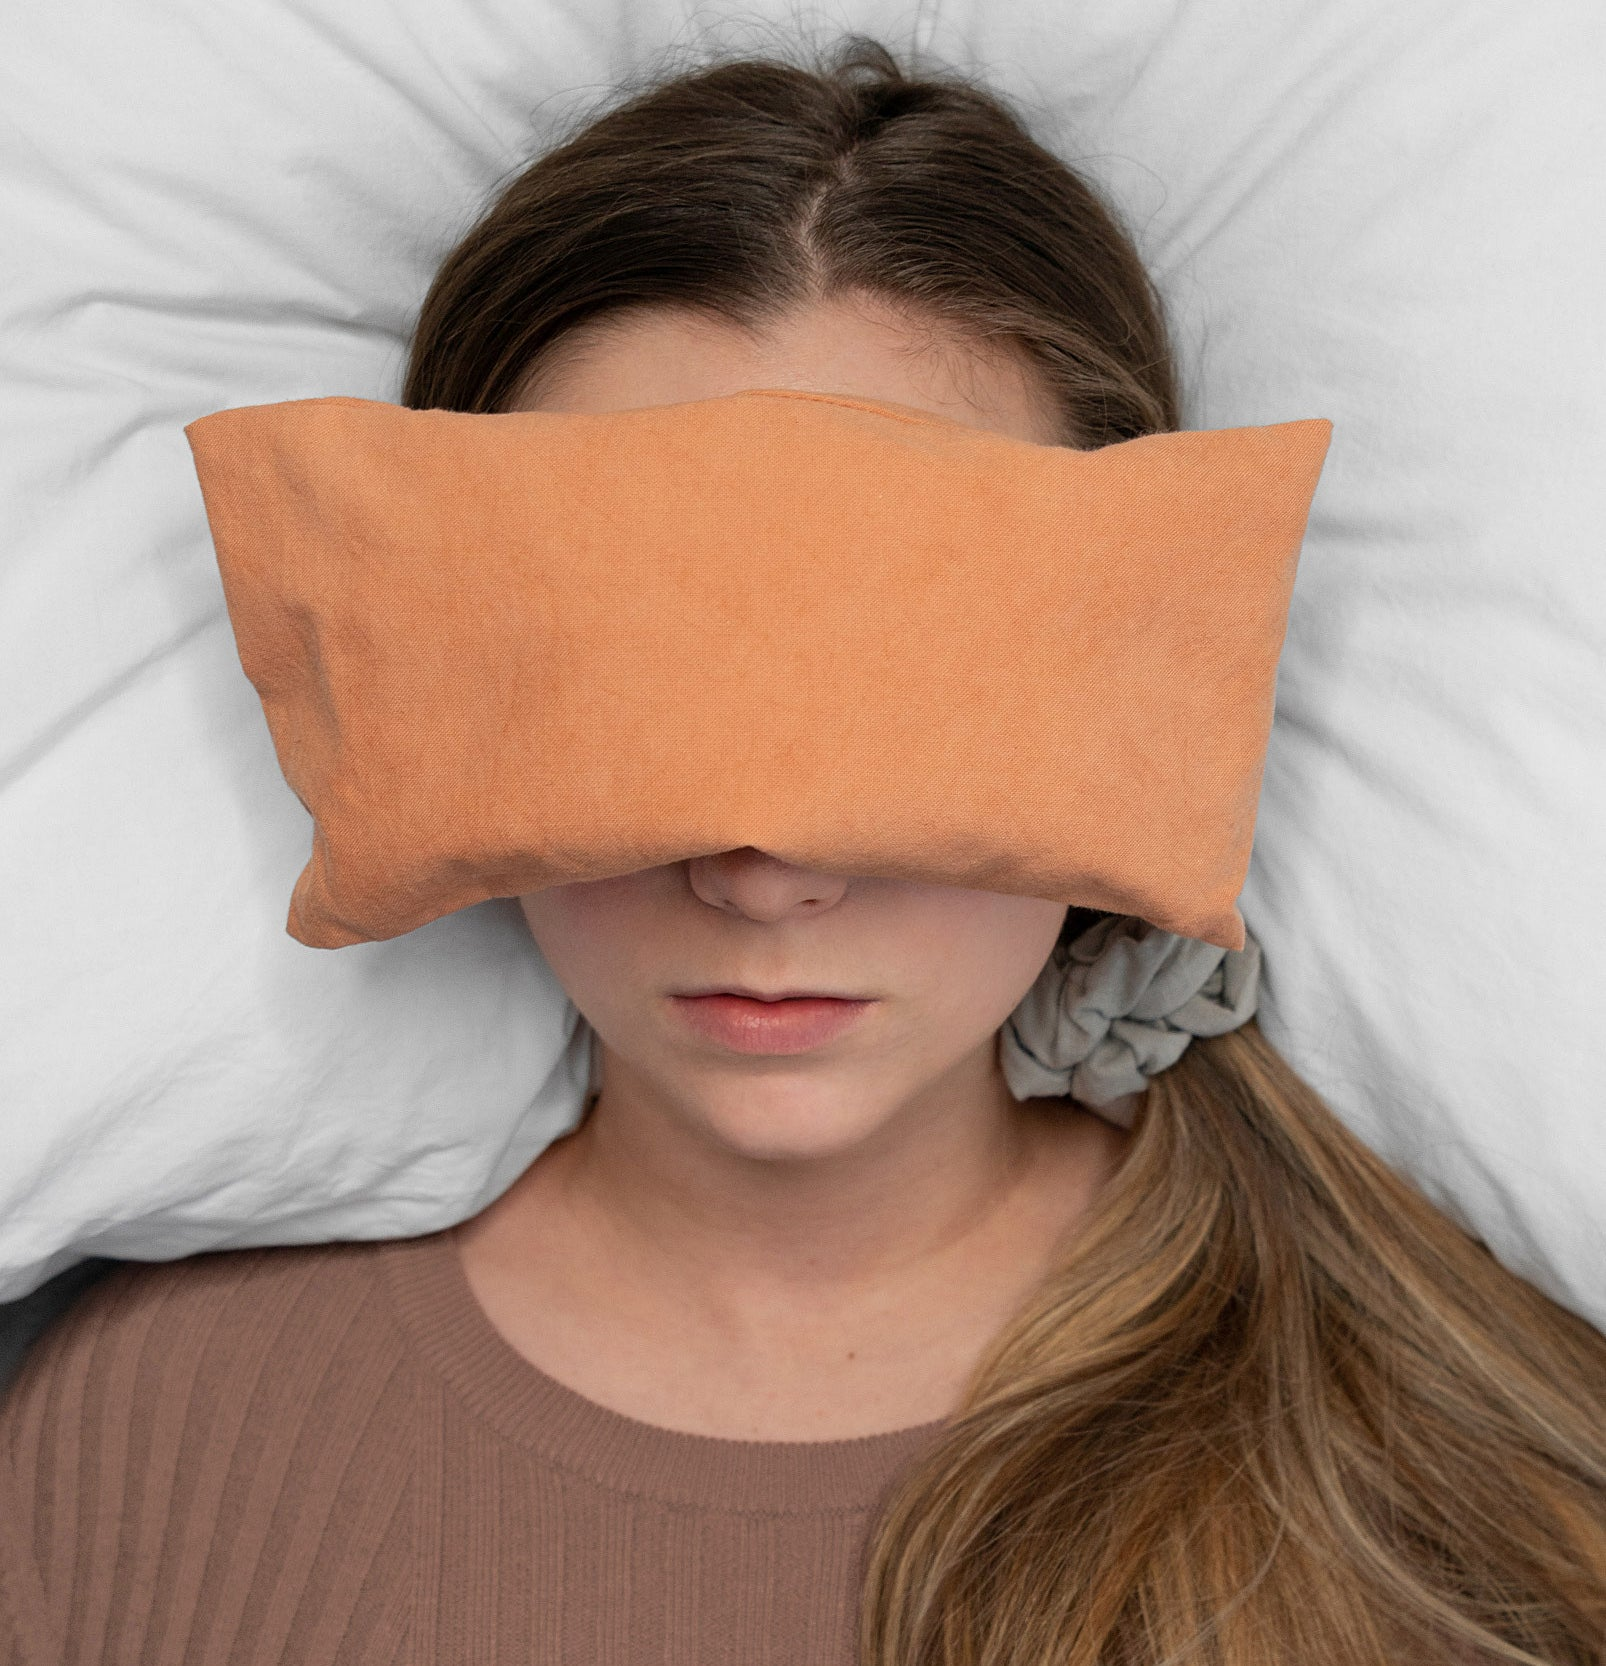 A person lying on a bed with a rectangular bean bag over their eyes